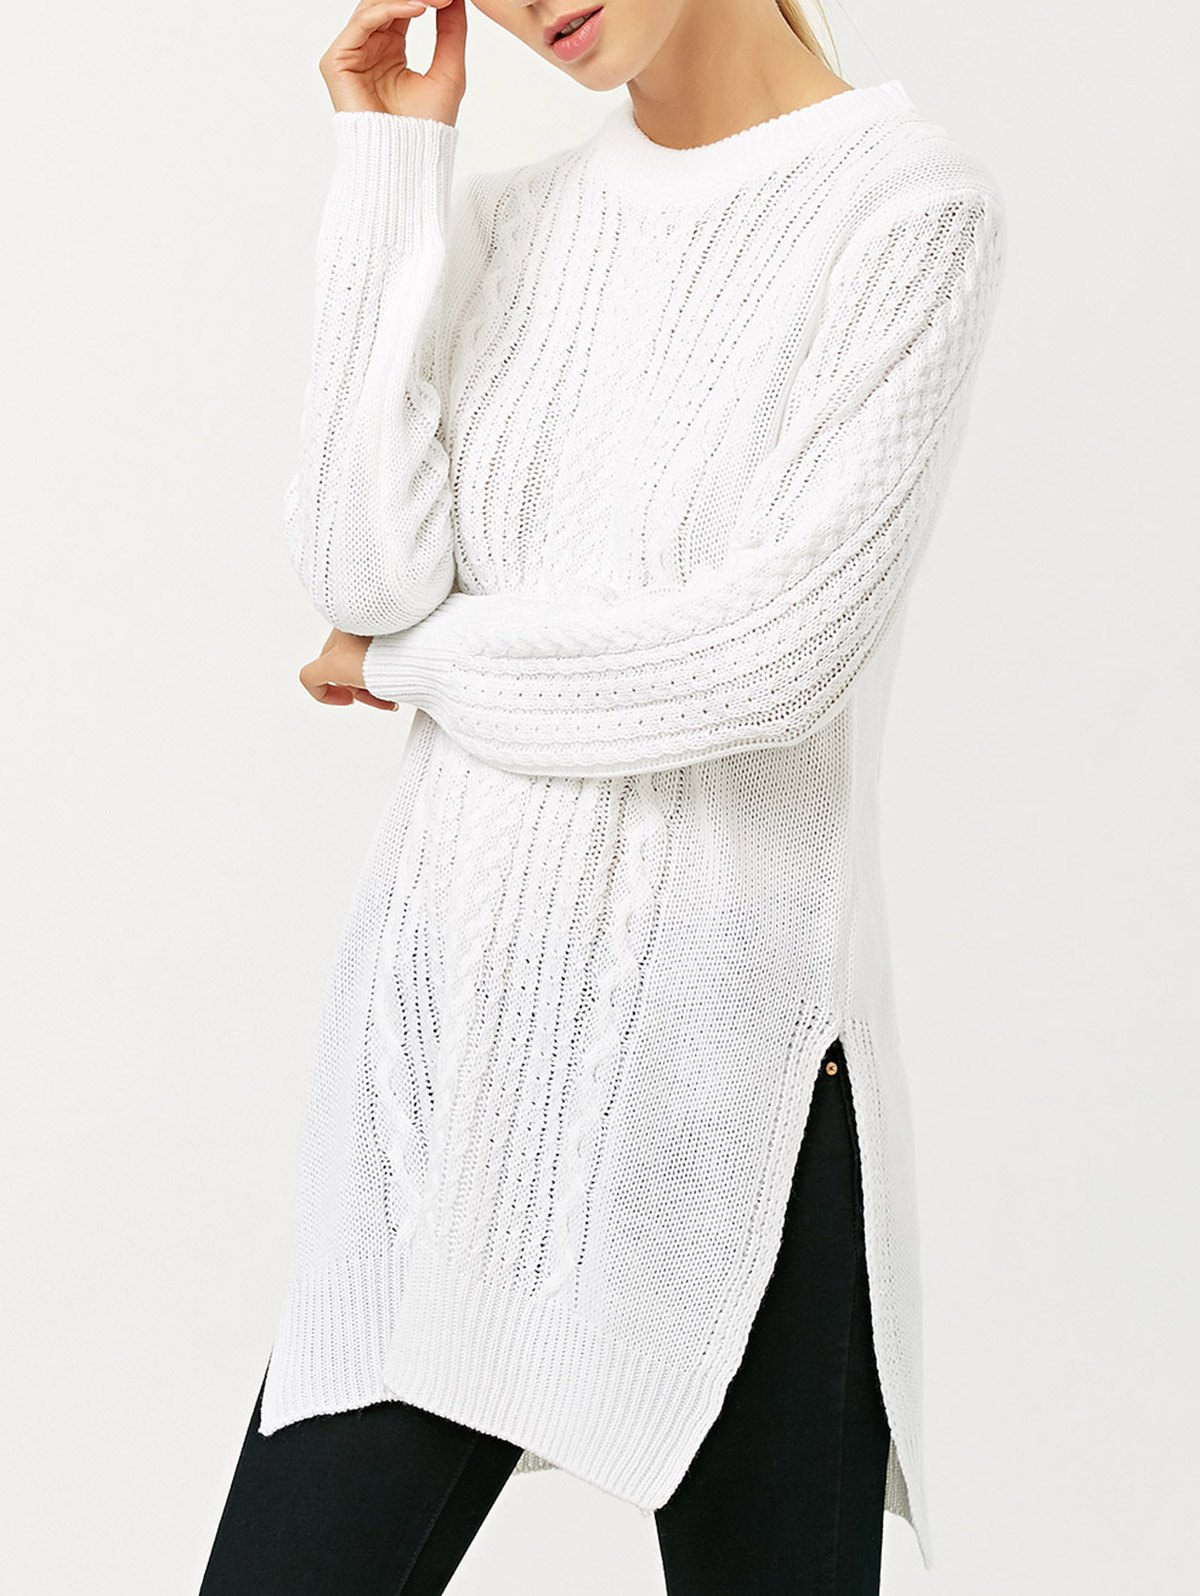 Cable Knit Side Slit JumperClothes<br><br><br>Size: L<br>Color: WHITE